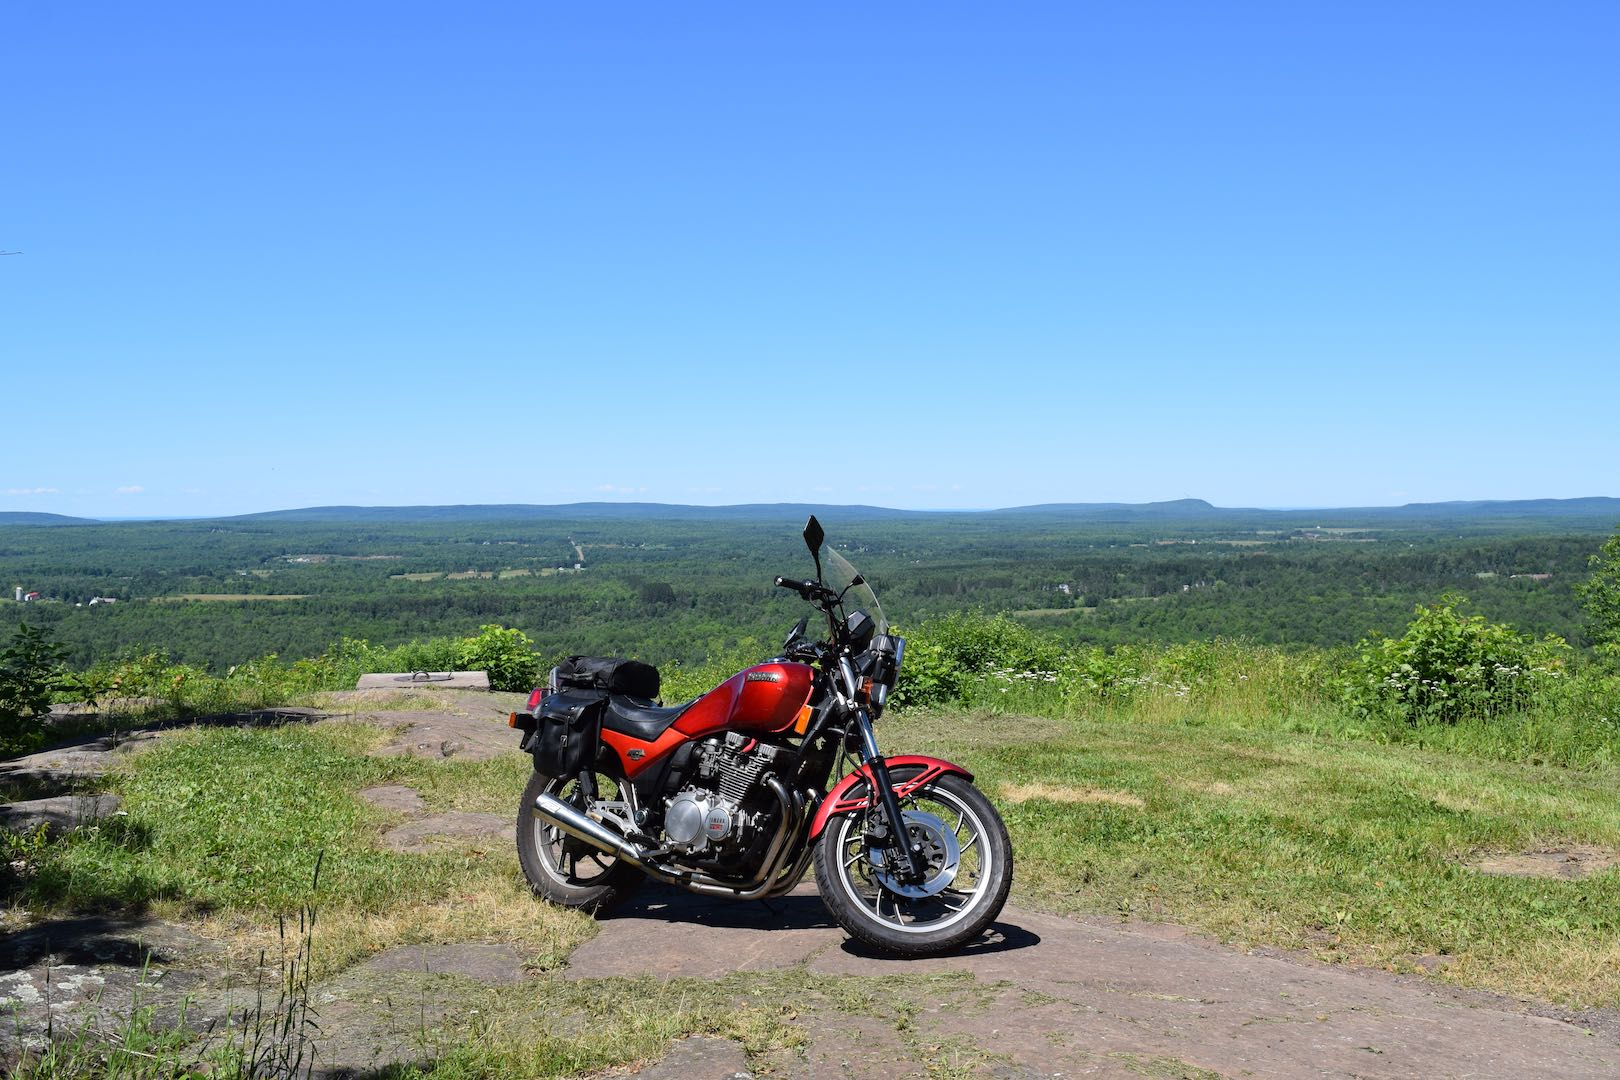 Touring Michigan's Upper Peninsula to the top of Mount Zion in Ironwood, MI, puts the Seca's smooth power and easy ride to great use.